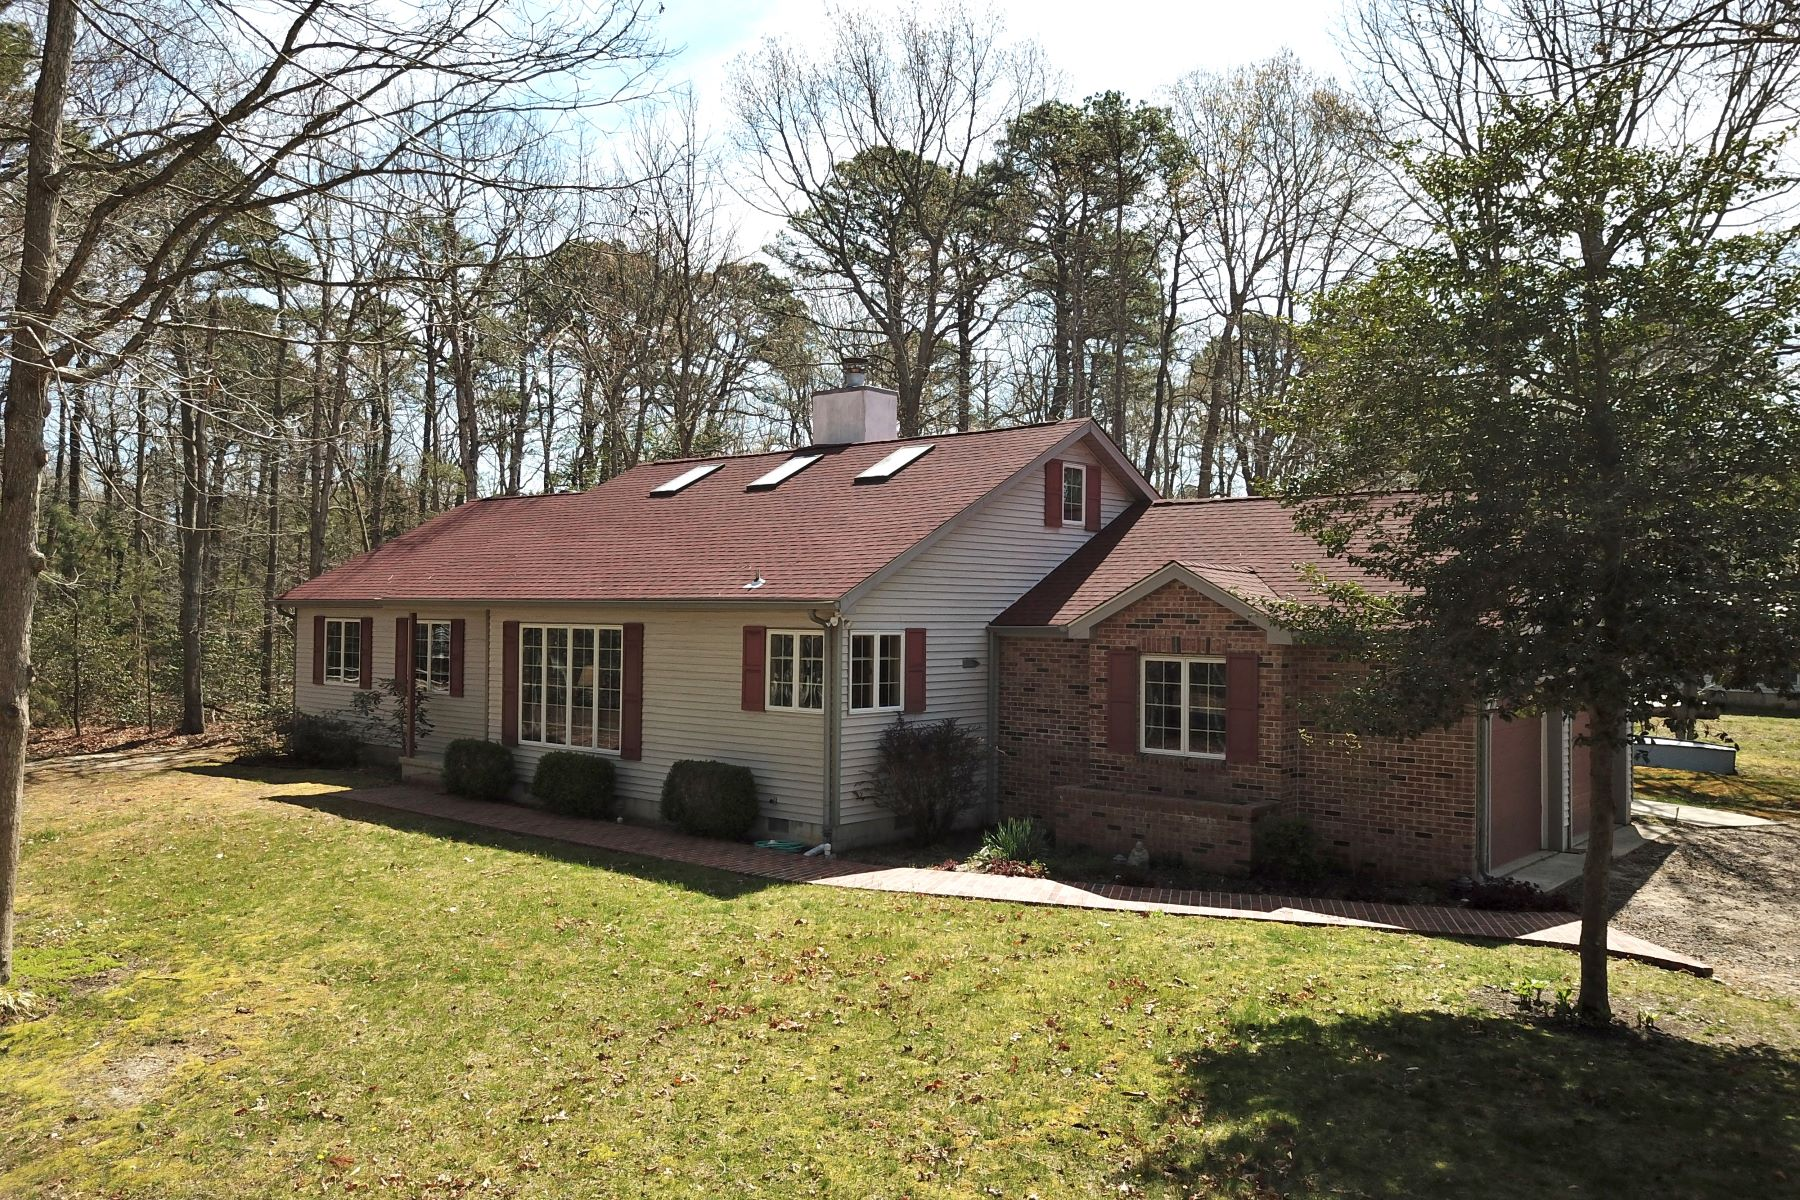 Moradia para Venda às Spacious and Charming Single Family Home 105 Cedar Lane East, Cape May Court House, Nova Jersey 08210 Estados Unidos